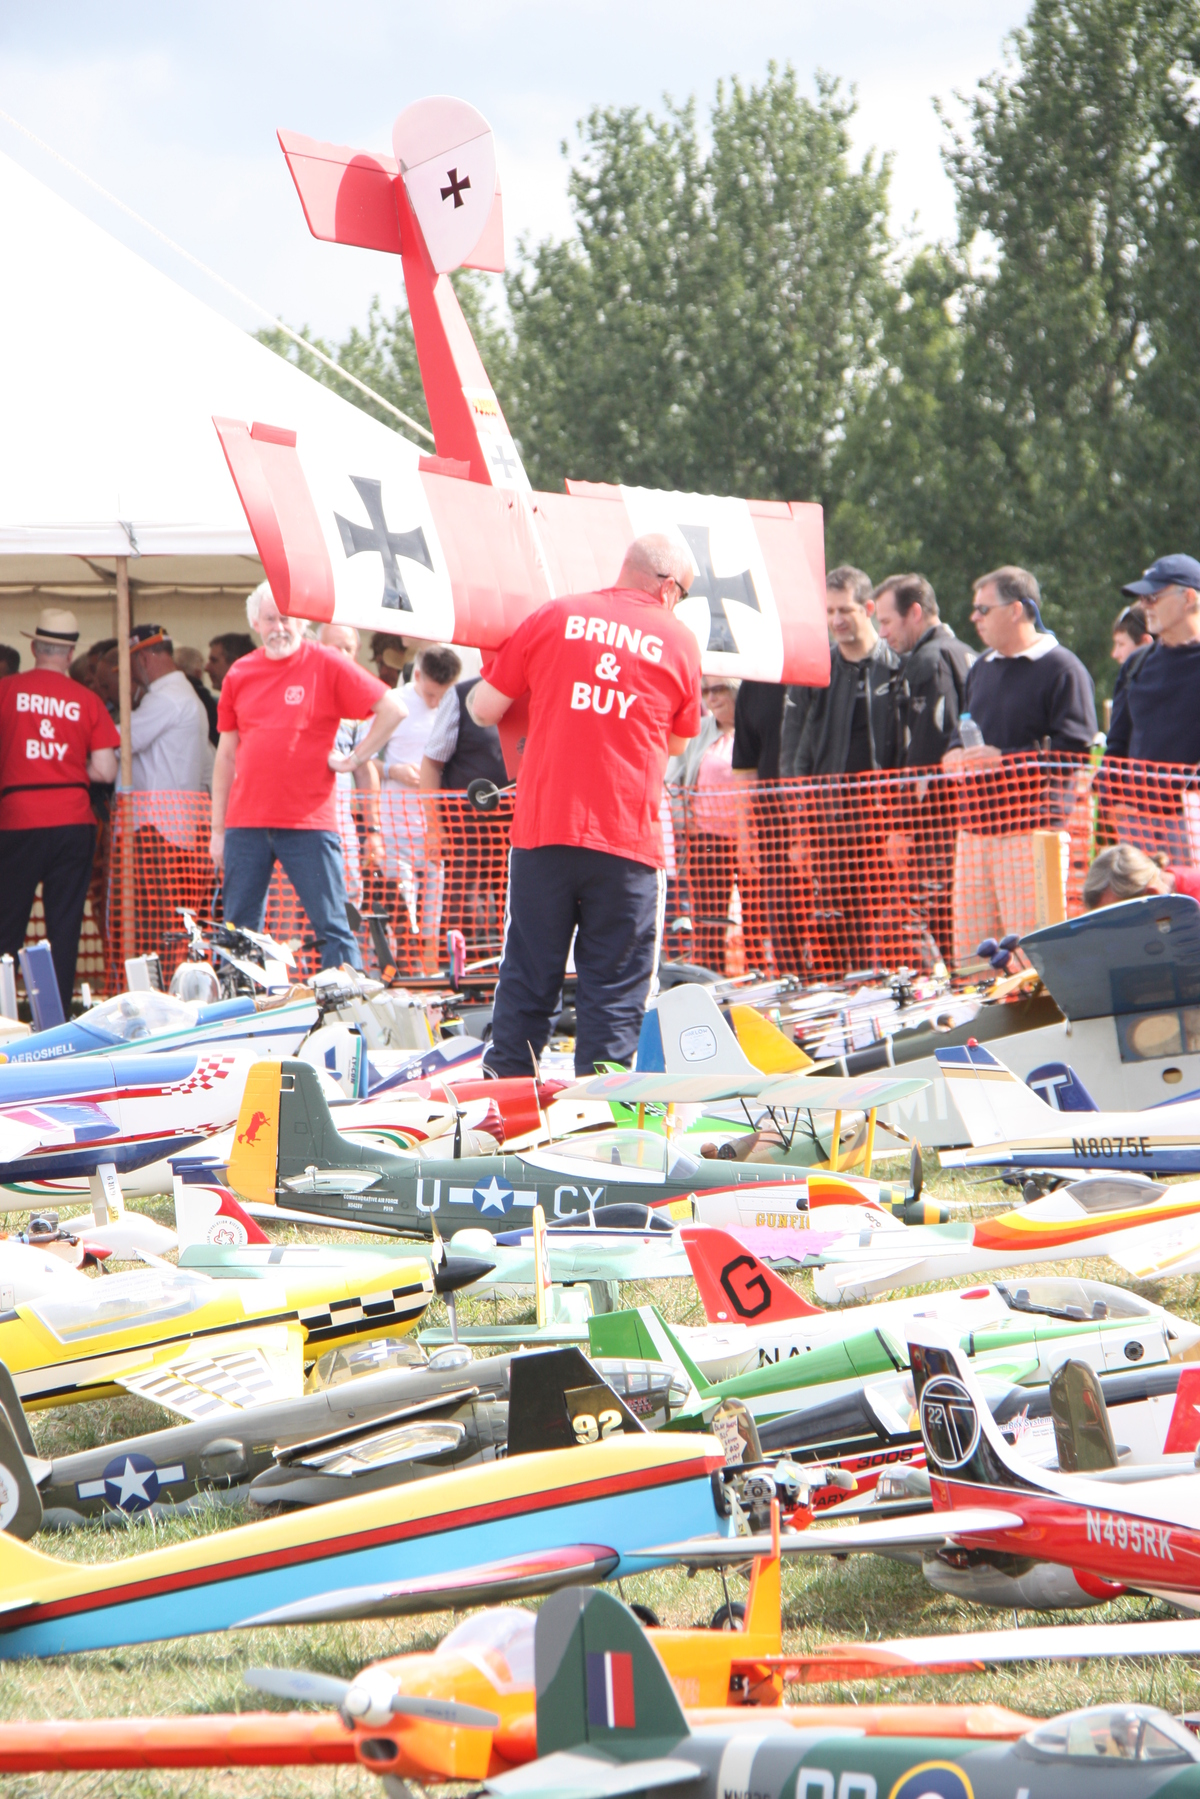 A 'sea' of model aircraft at the 2014 Bring and Buy.